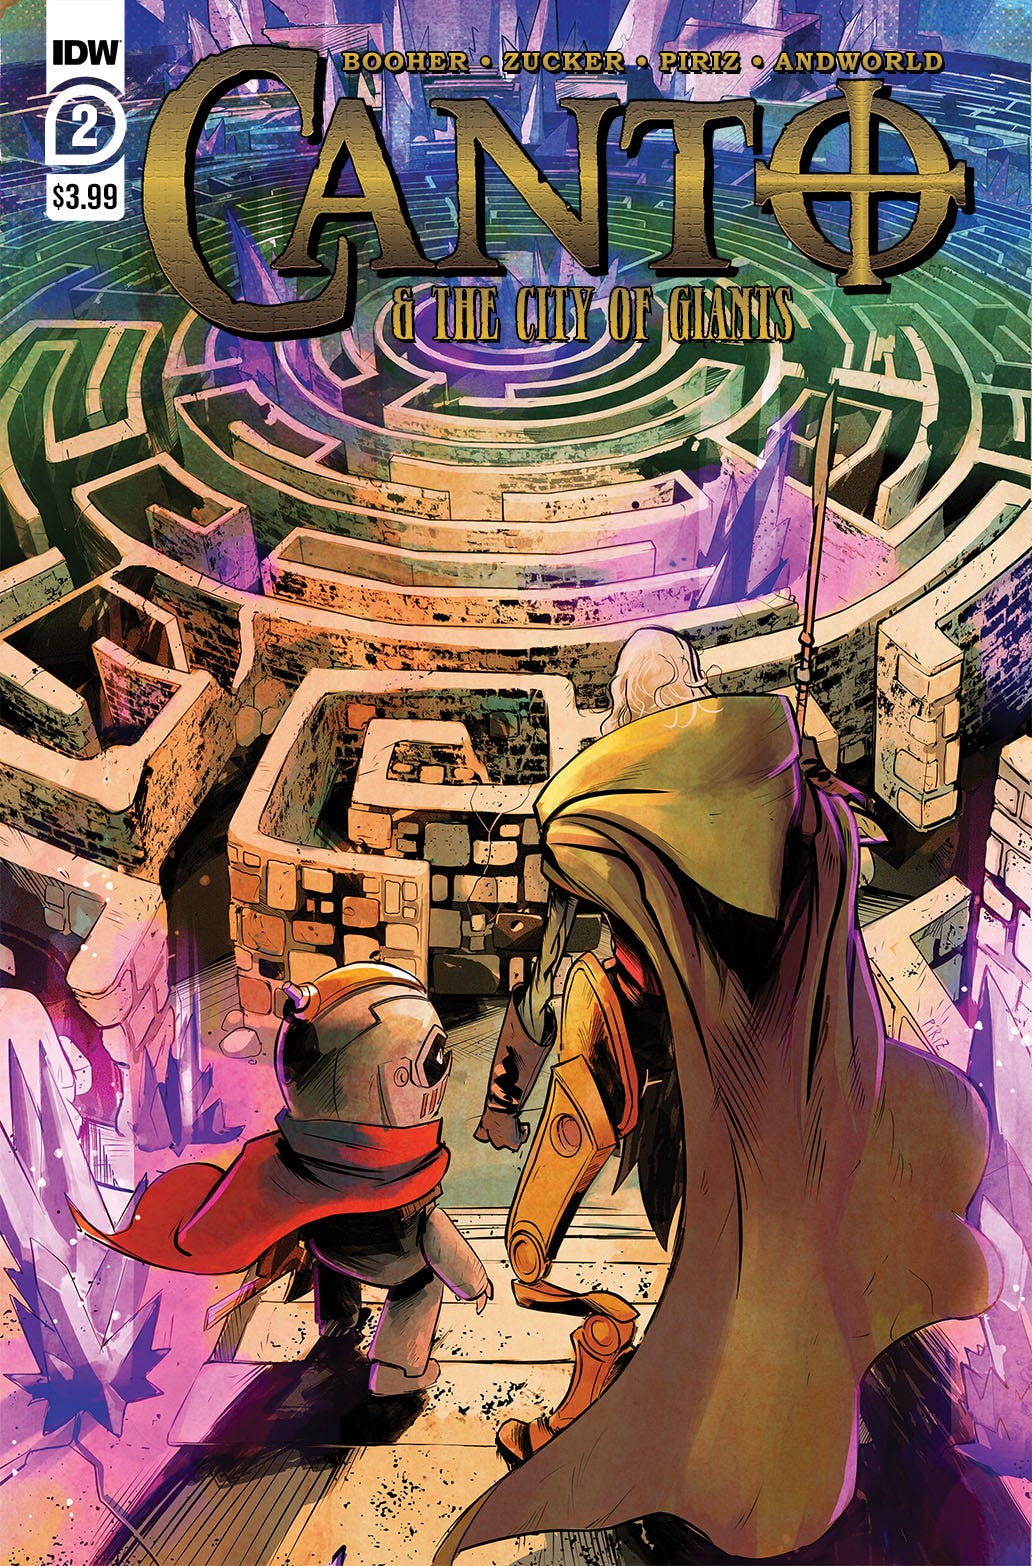 Canto & City of Giants #2 (of 3)